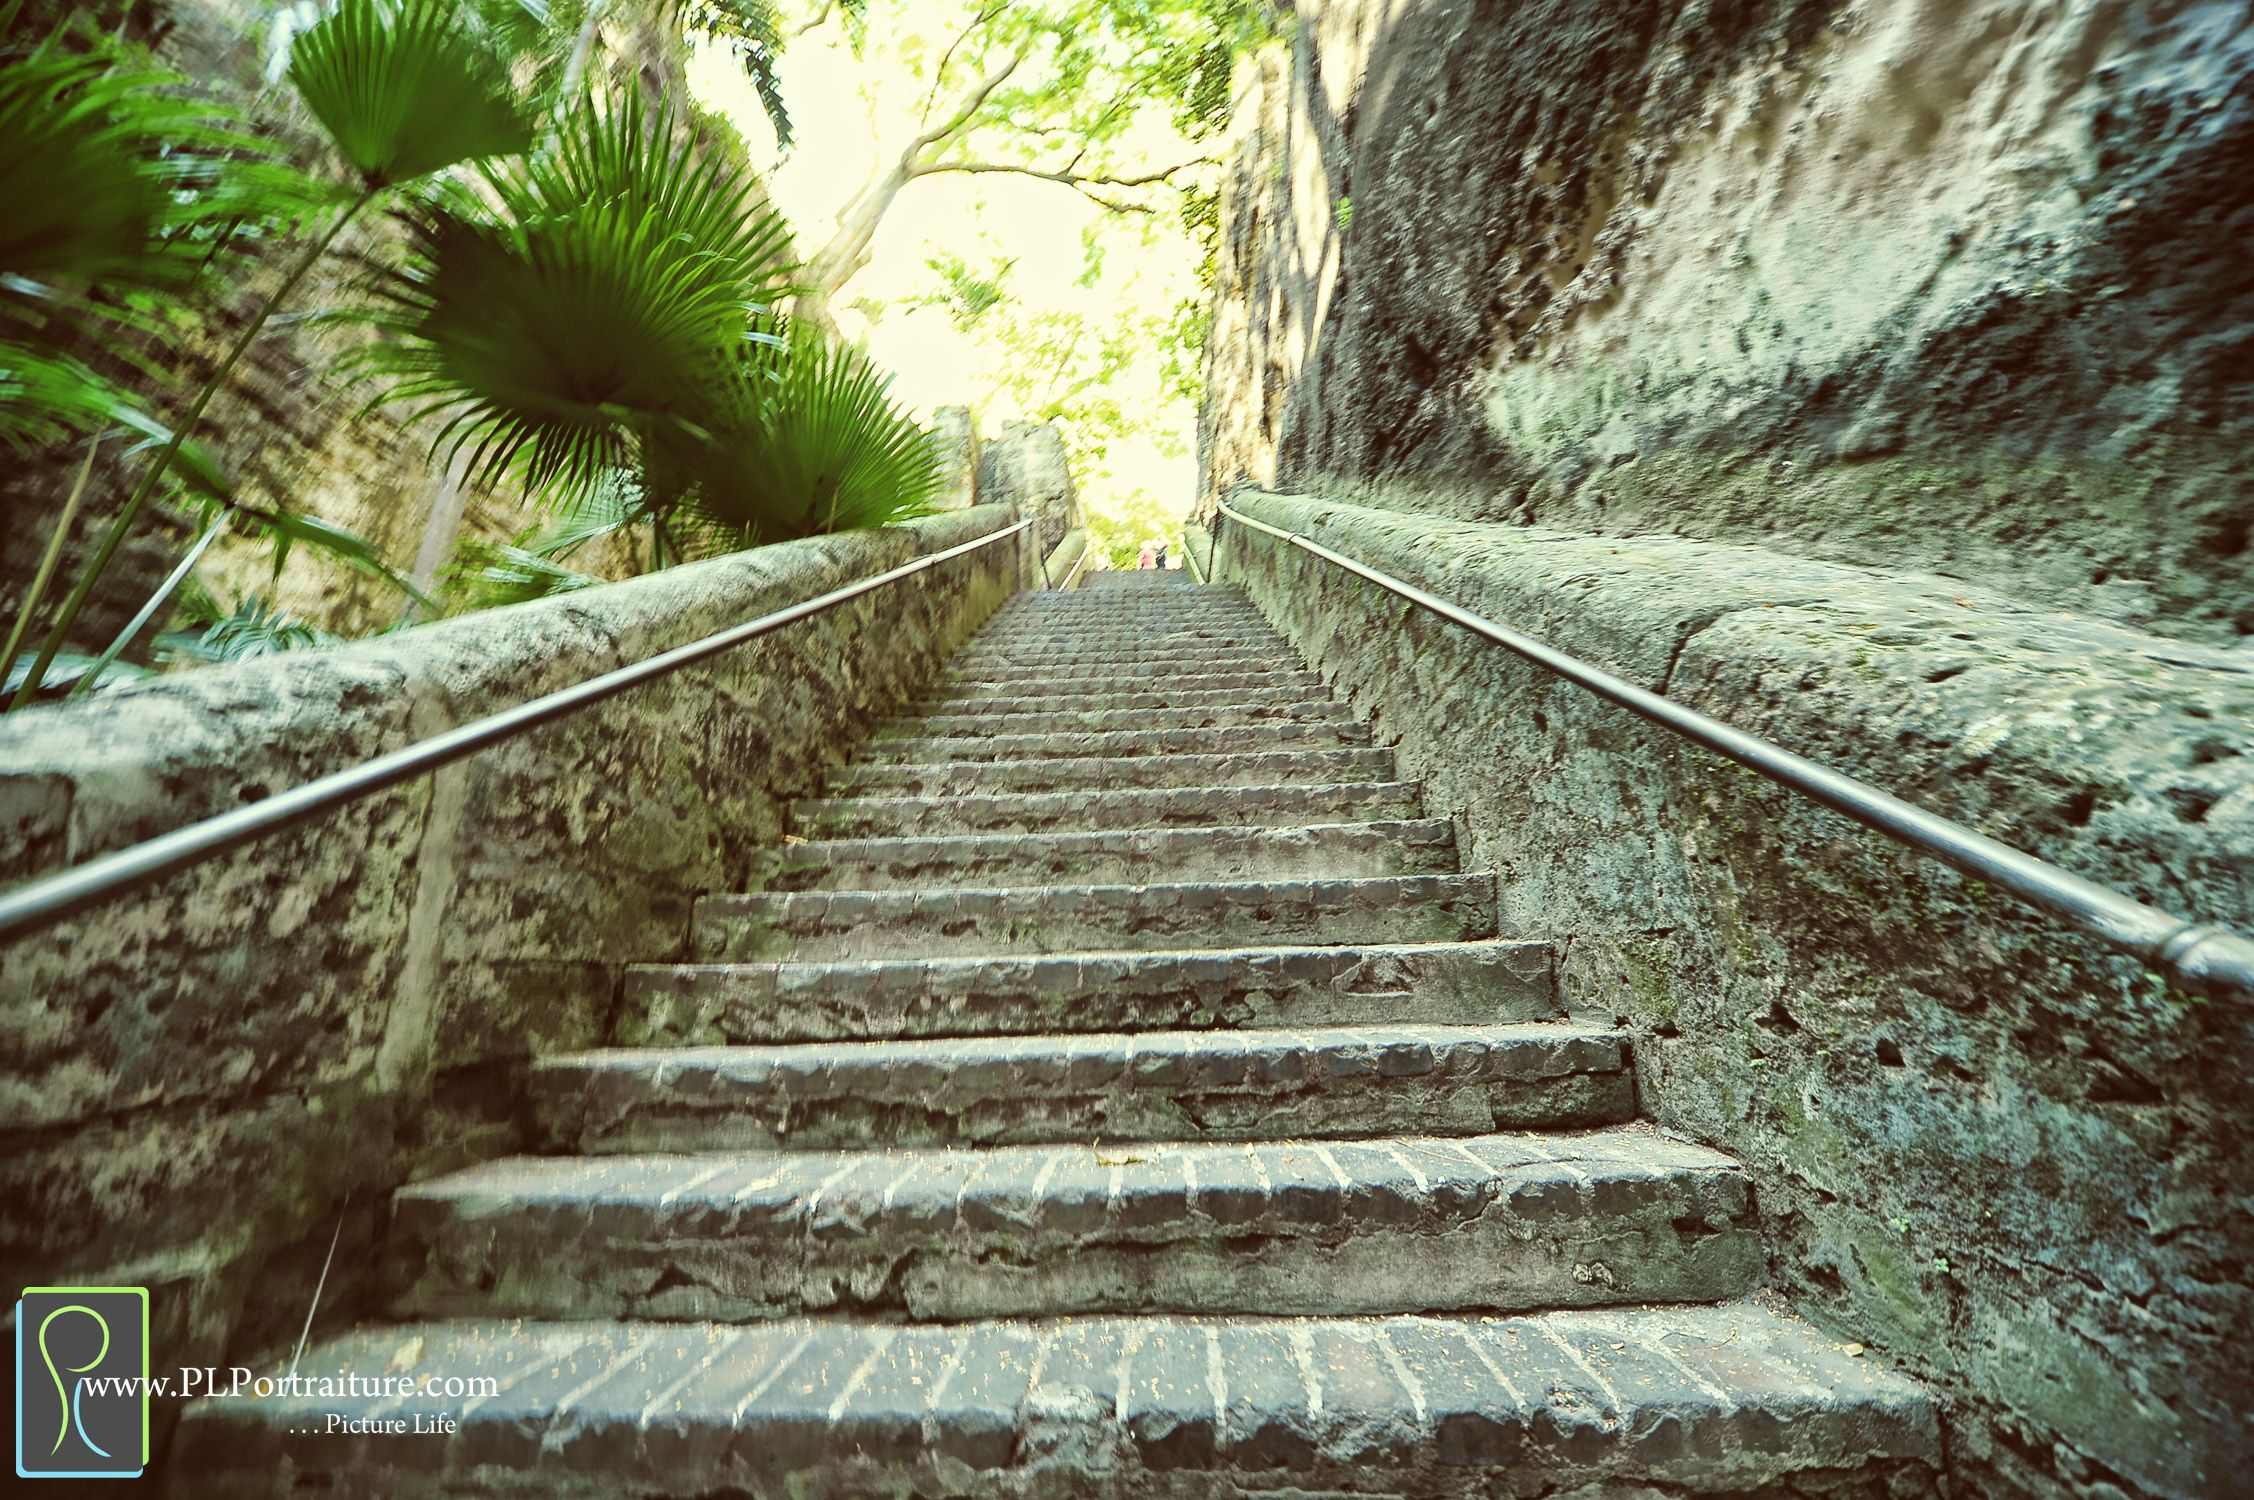 The Queen S Staircase Nassau Bahamas 11 03 13 Places To Go